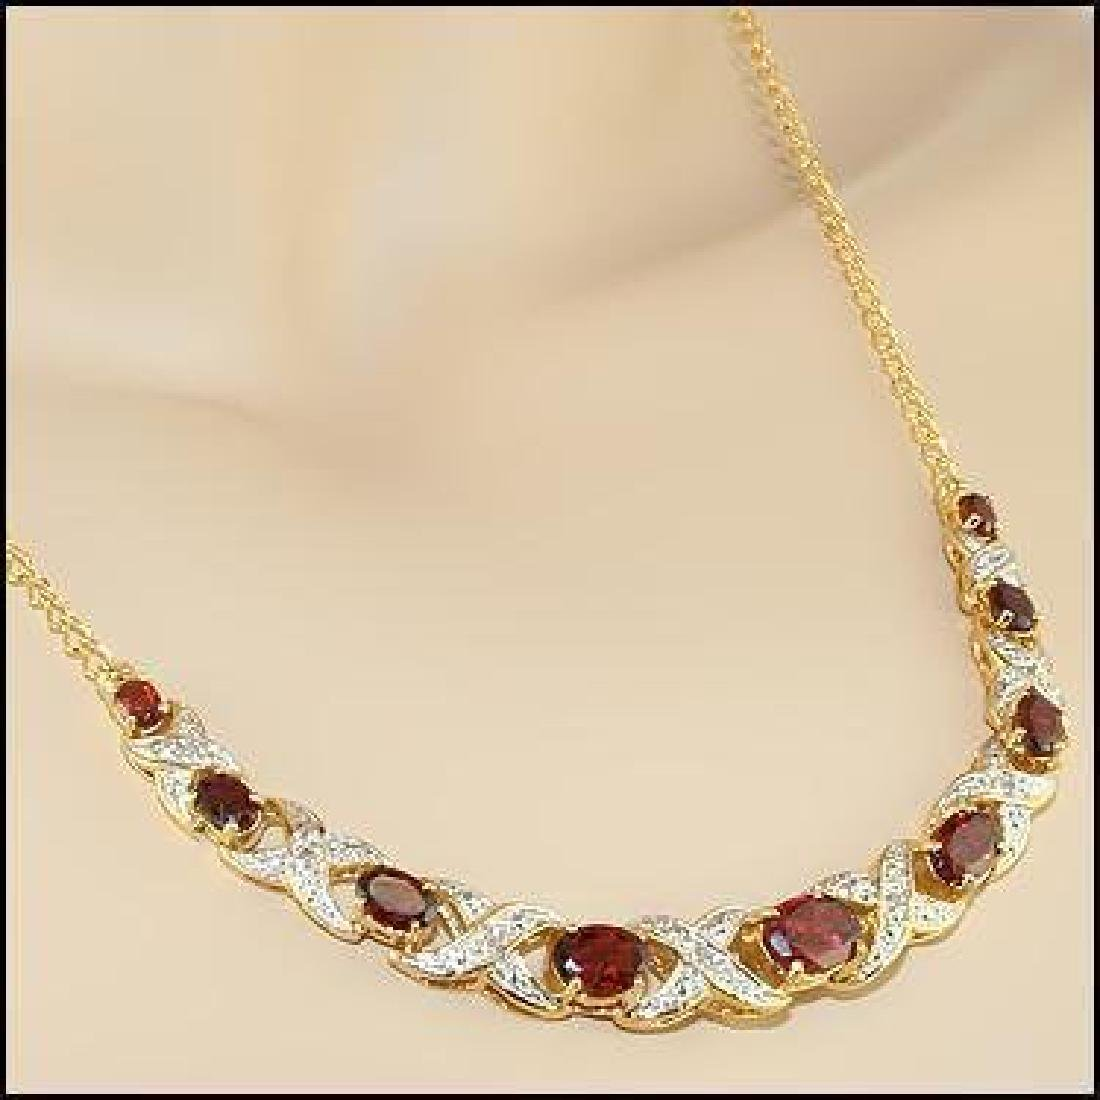 12.19 CT Garnet & Diamond Designer Necklace $1,335